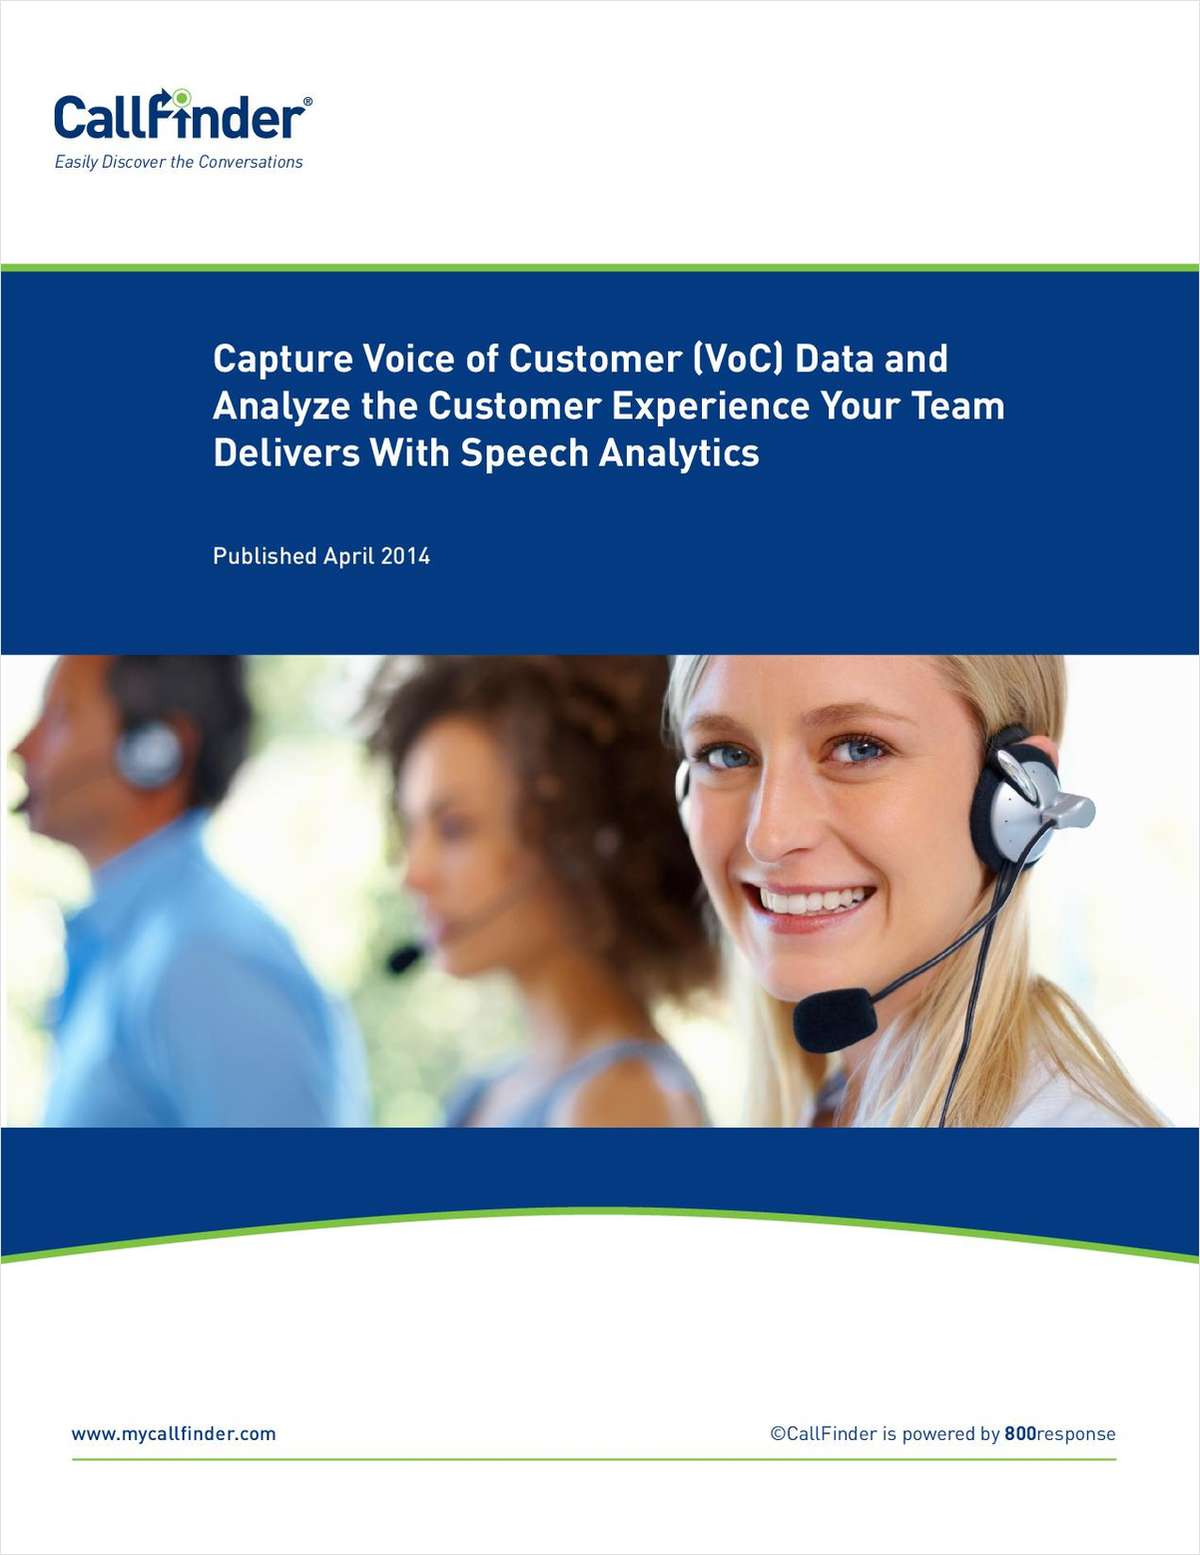 Essential Steps to Capture and Analyze the Customer Experience